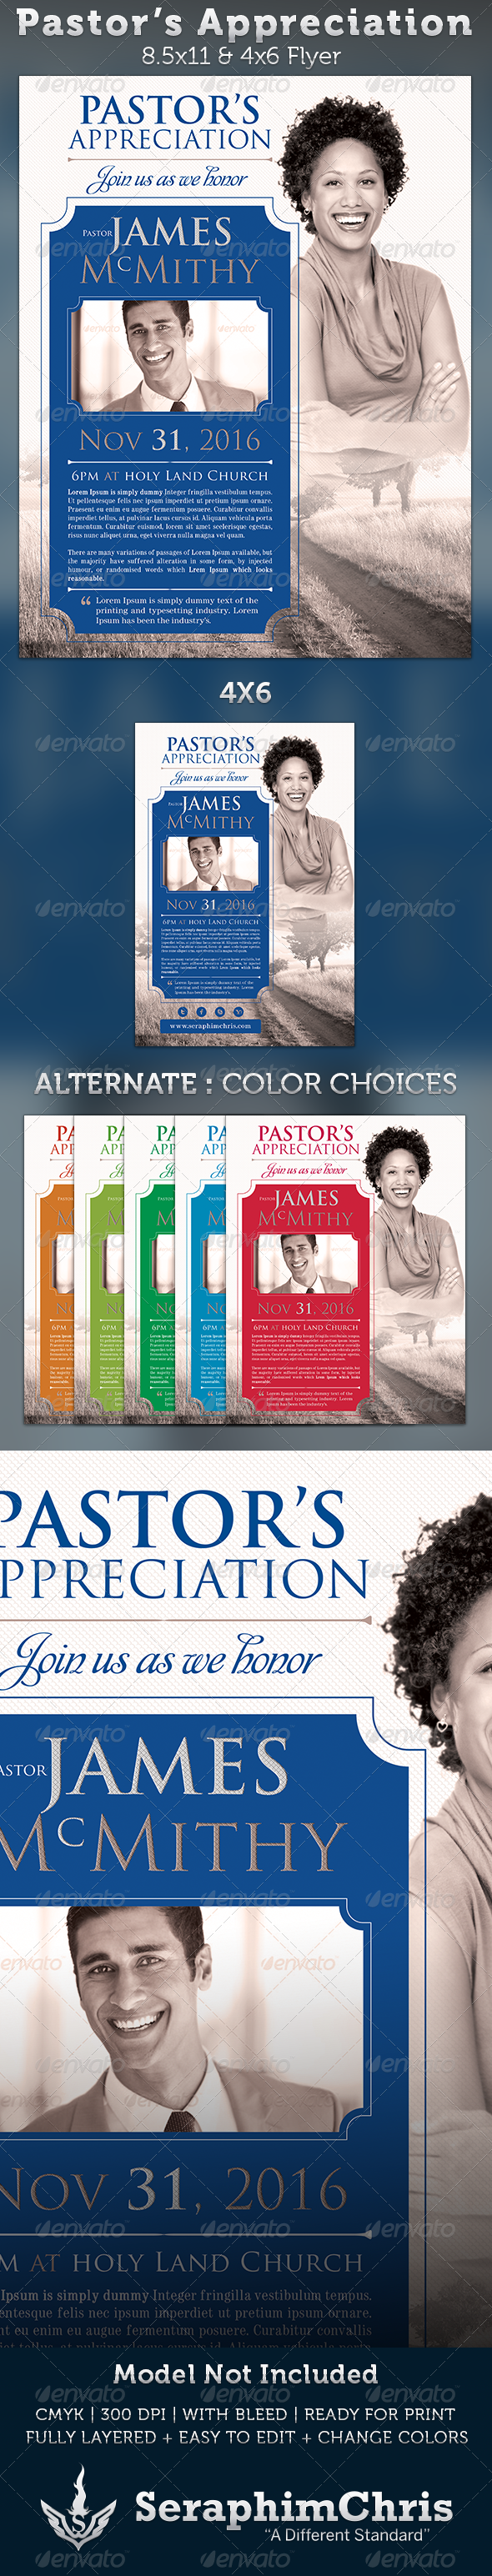 Pastor's Appreciation: Church Flyer Template - Church Flyers